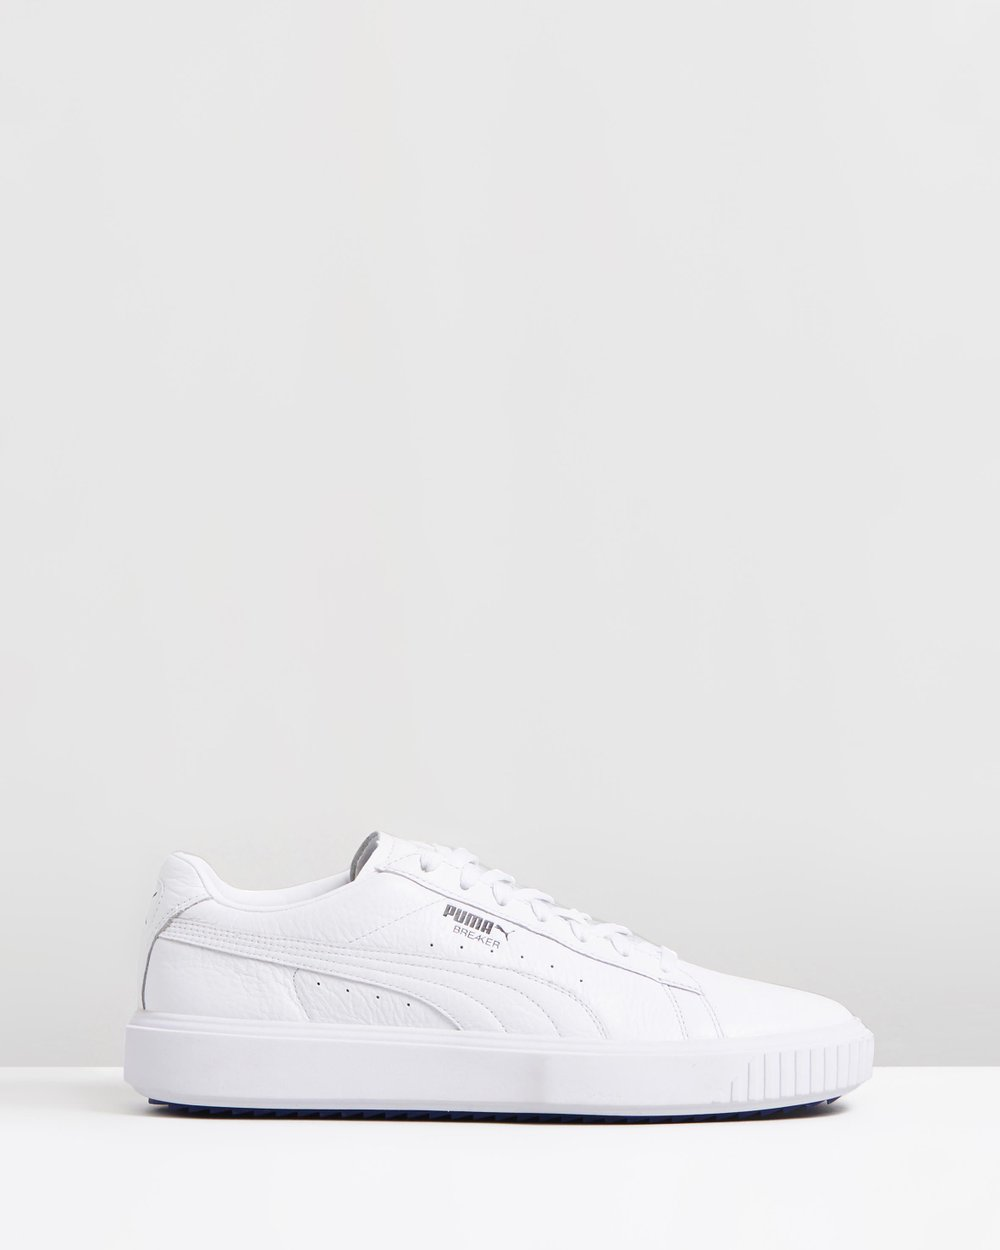 e2a0493a79eb77 Breaker Leather Sneakers - Unisex by Puma Online